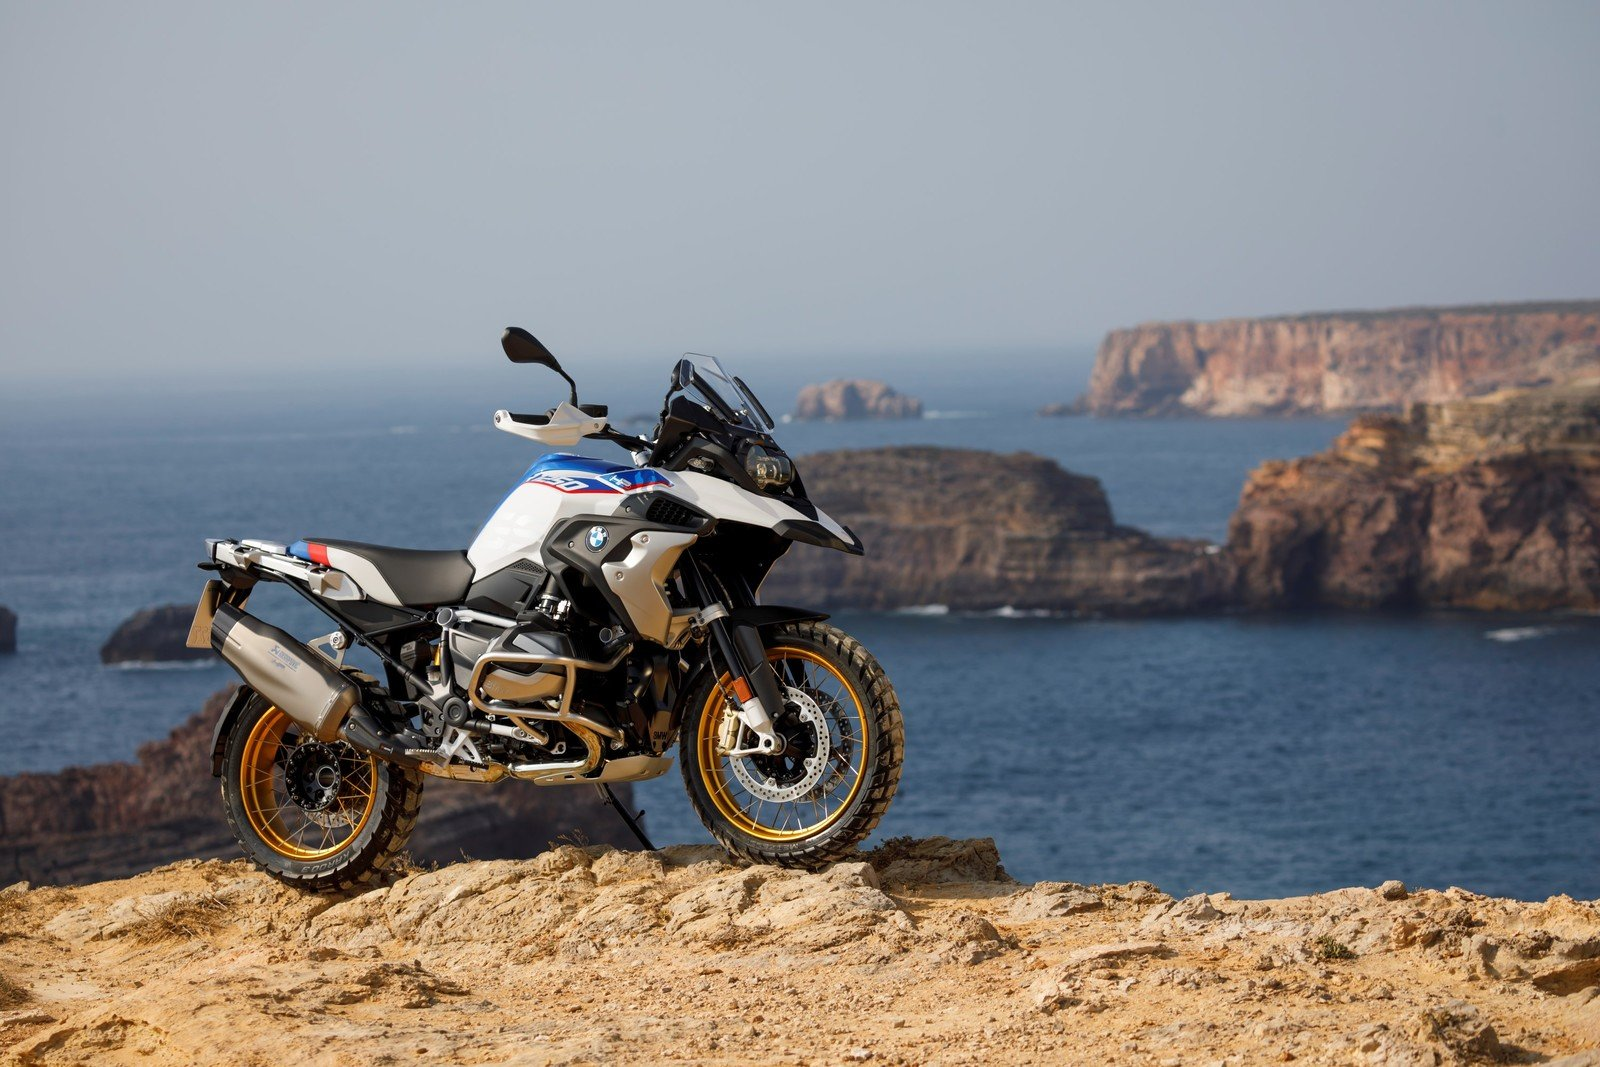 2019 BMW R 1250 GS Pictures, Photos, Wallpapers.